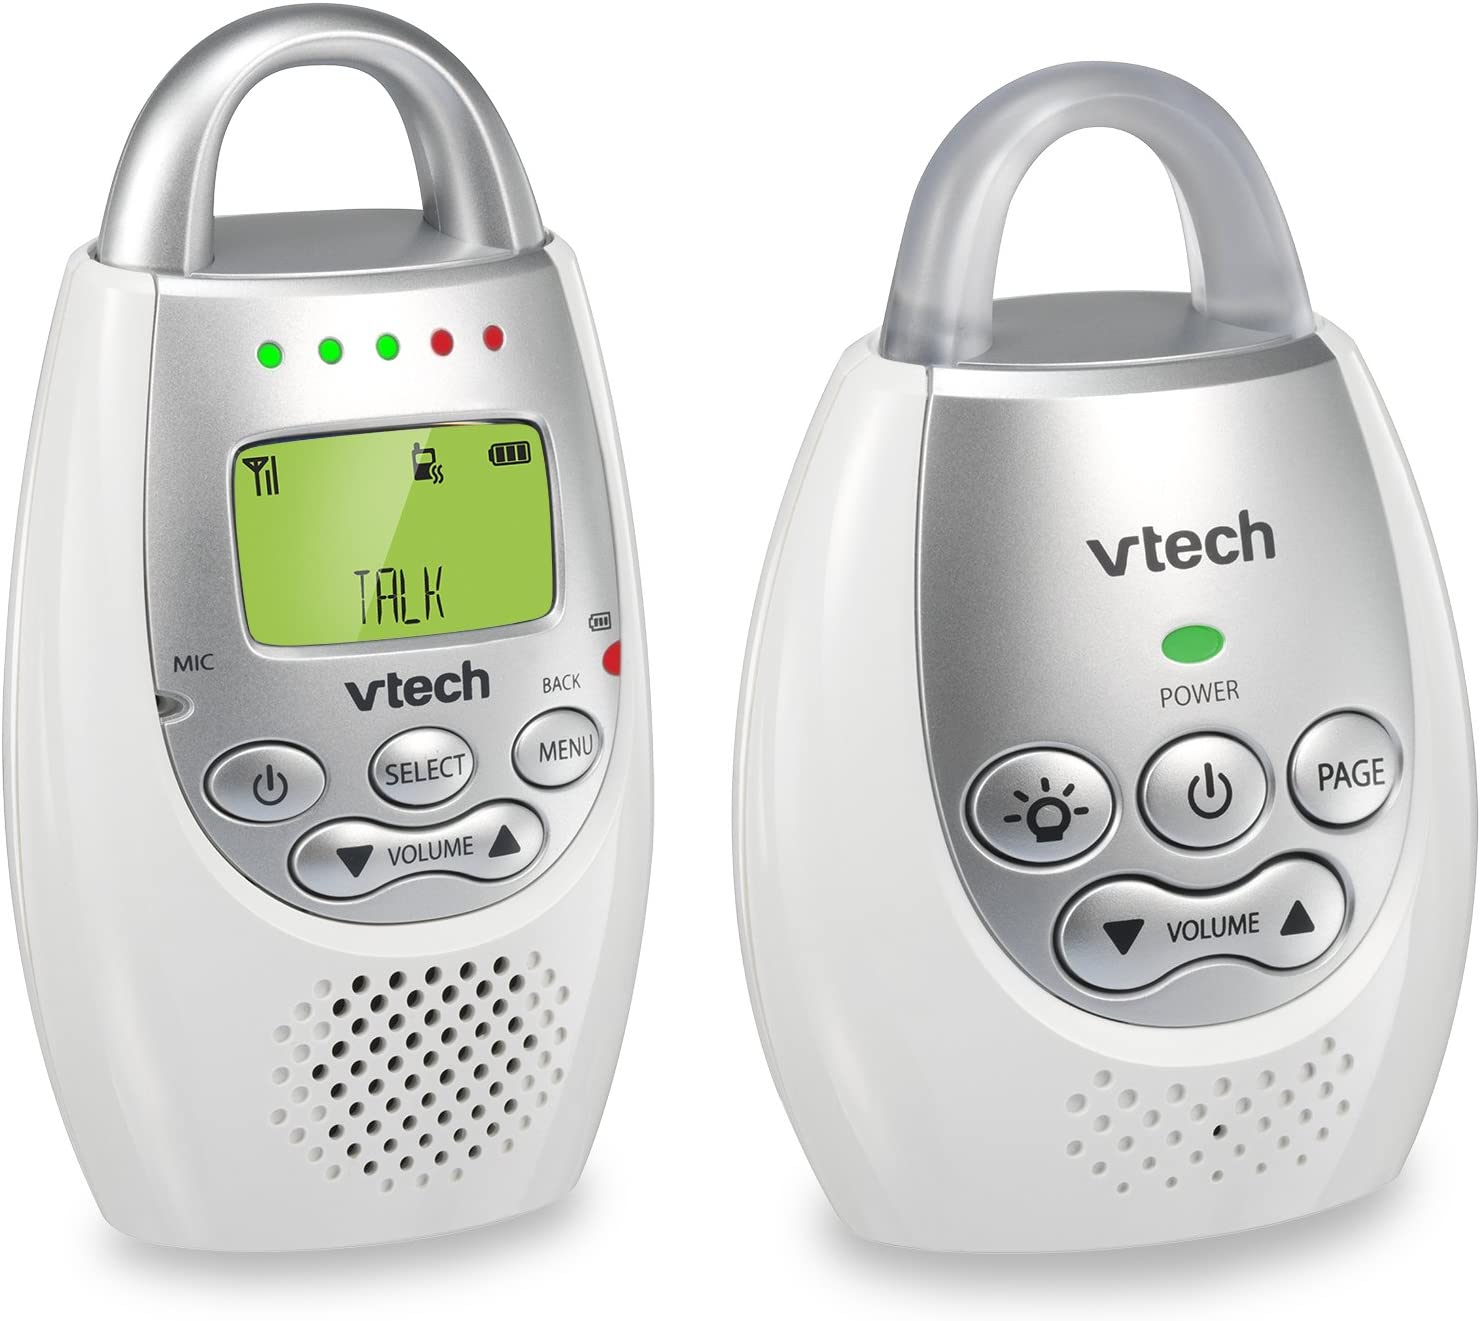 VTech DM221 Audio Baby Monitor with up to 1,000 ft of Range, Vibrating Sound-Alert, Talk Back Intercom Night Light Loop